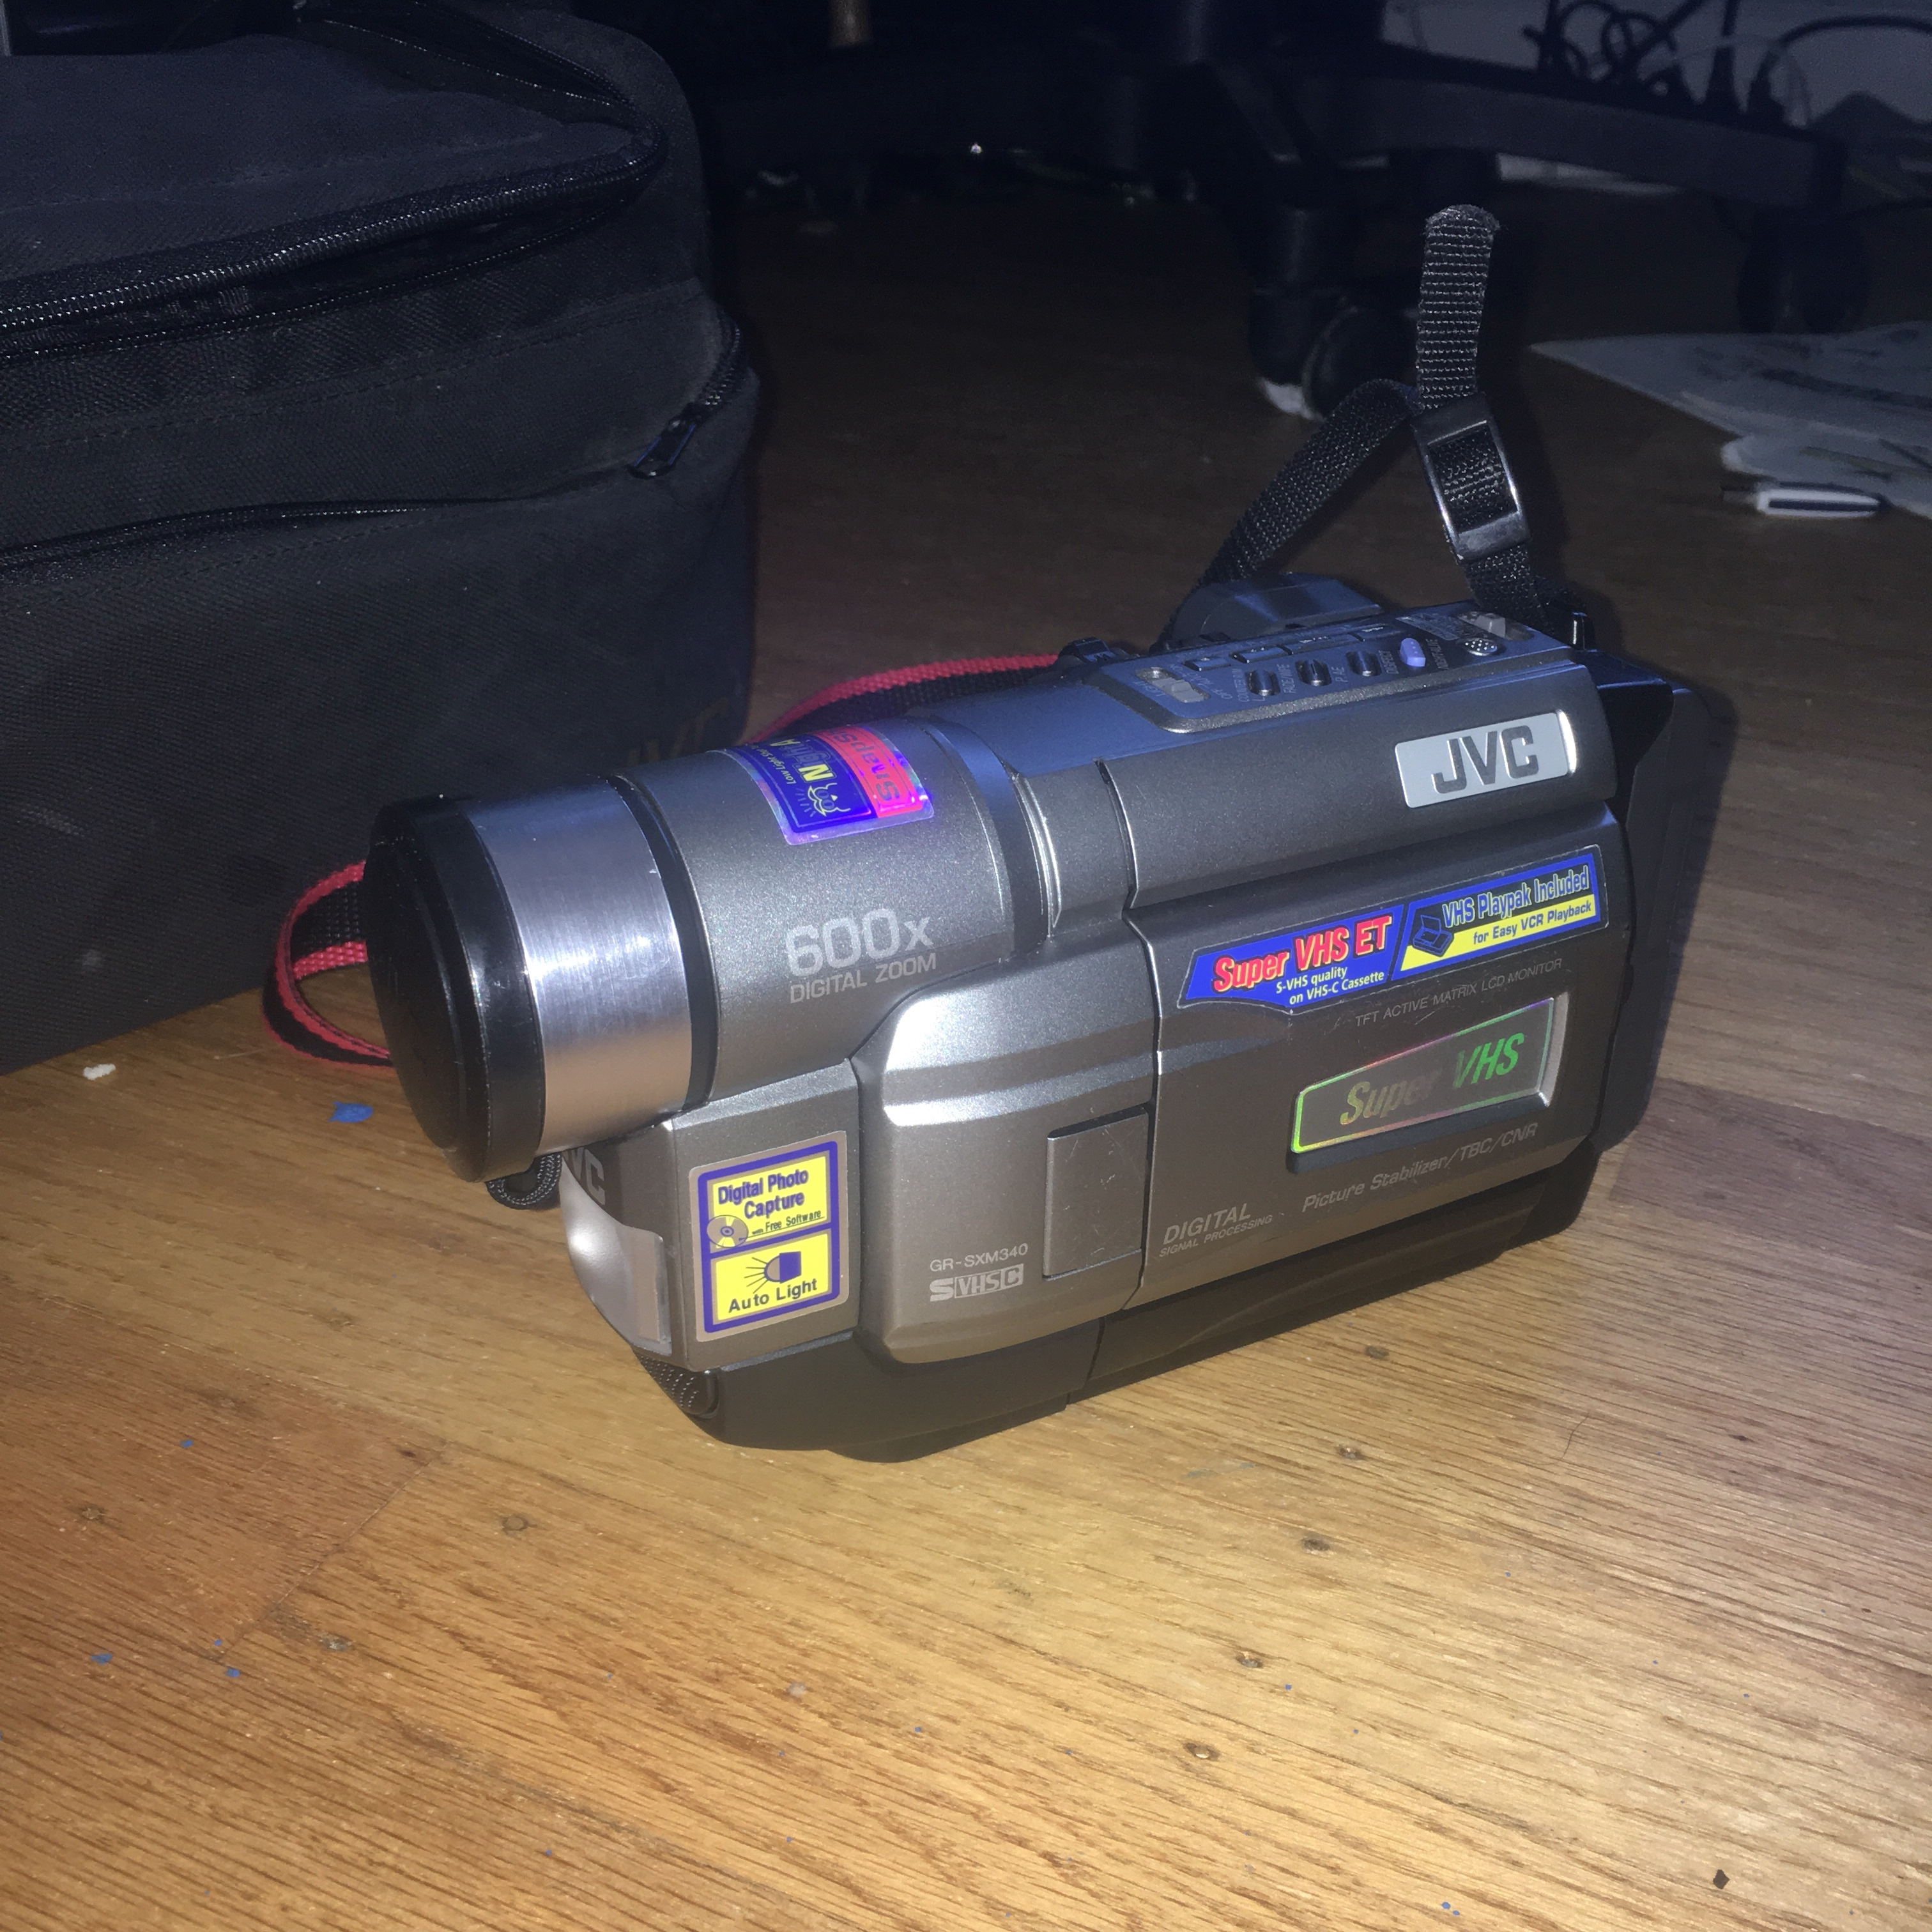 90s Jvc Camcorder Fully Functioning Comes With A Depop